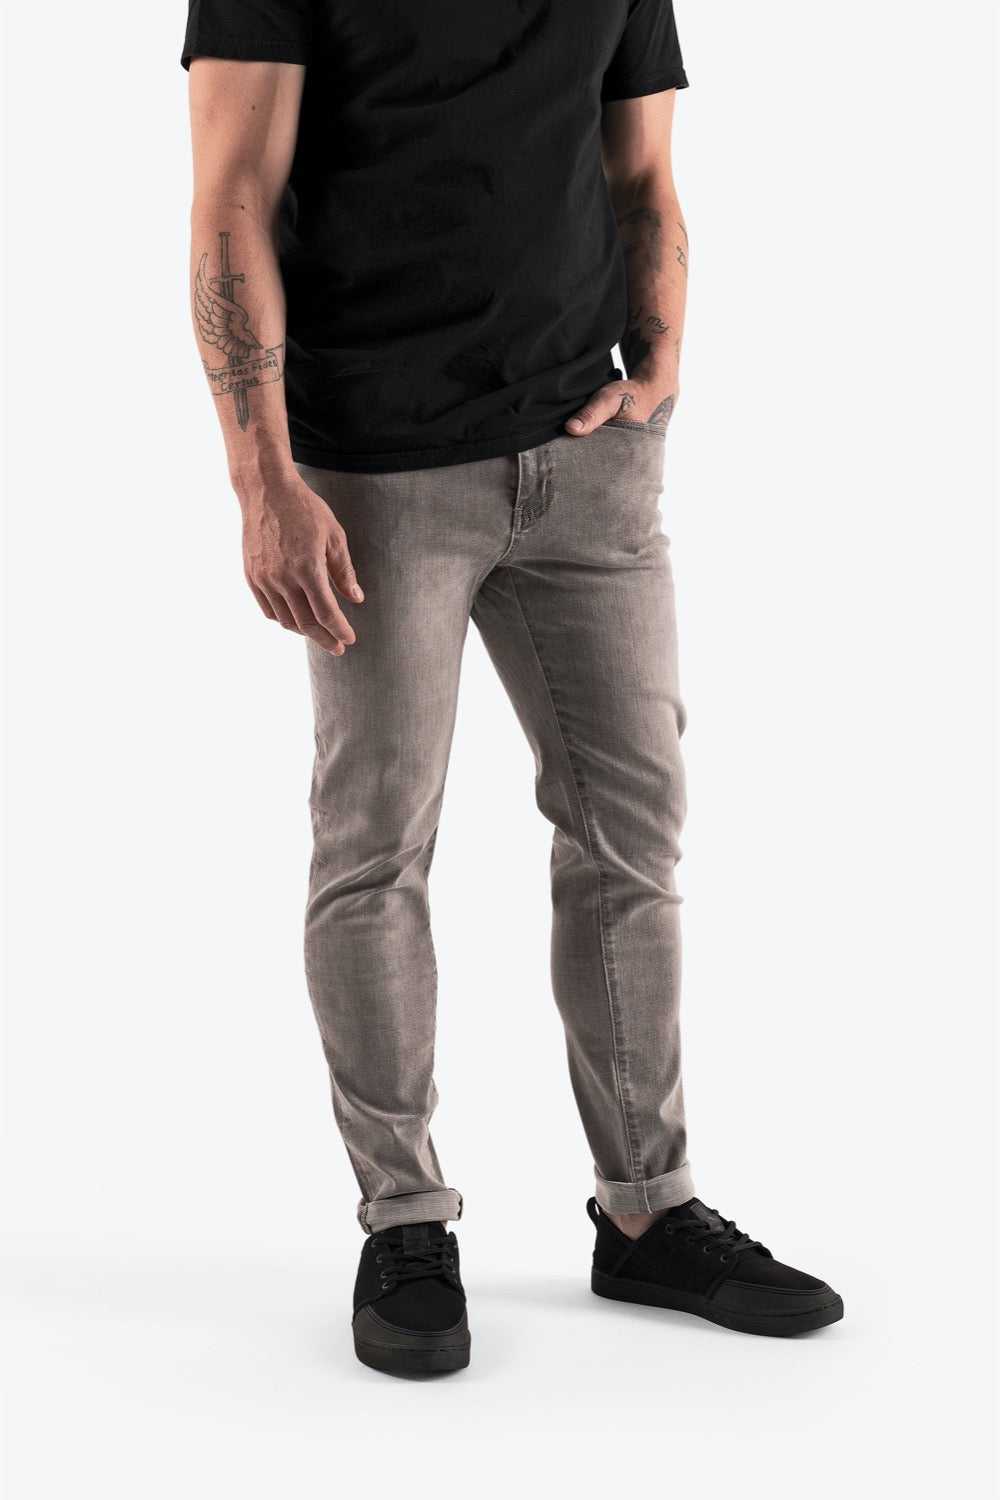 So iLL mens climbable grey denim with black shoes